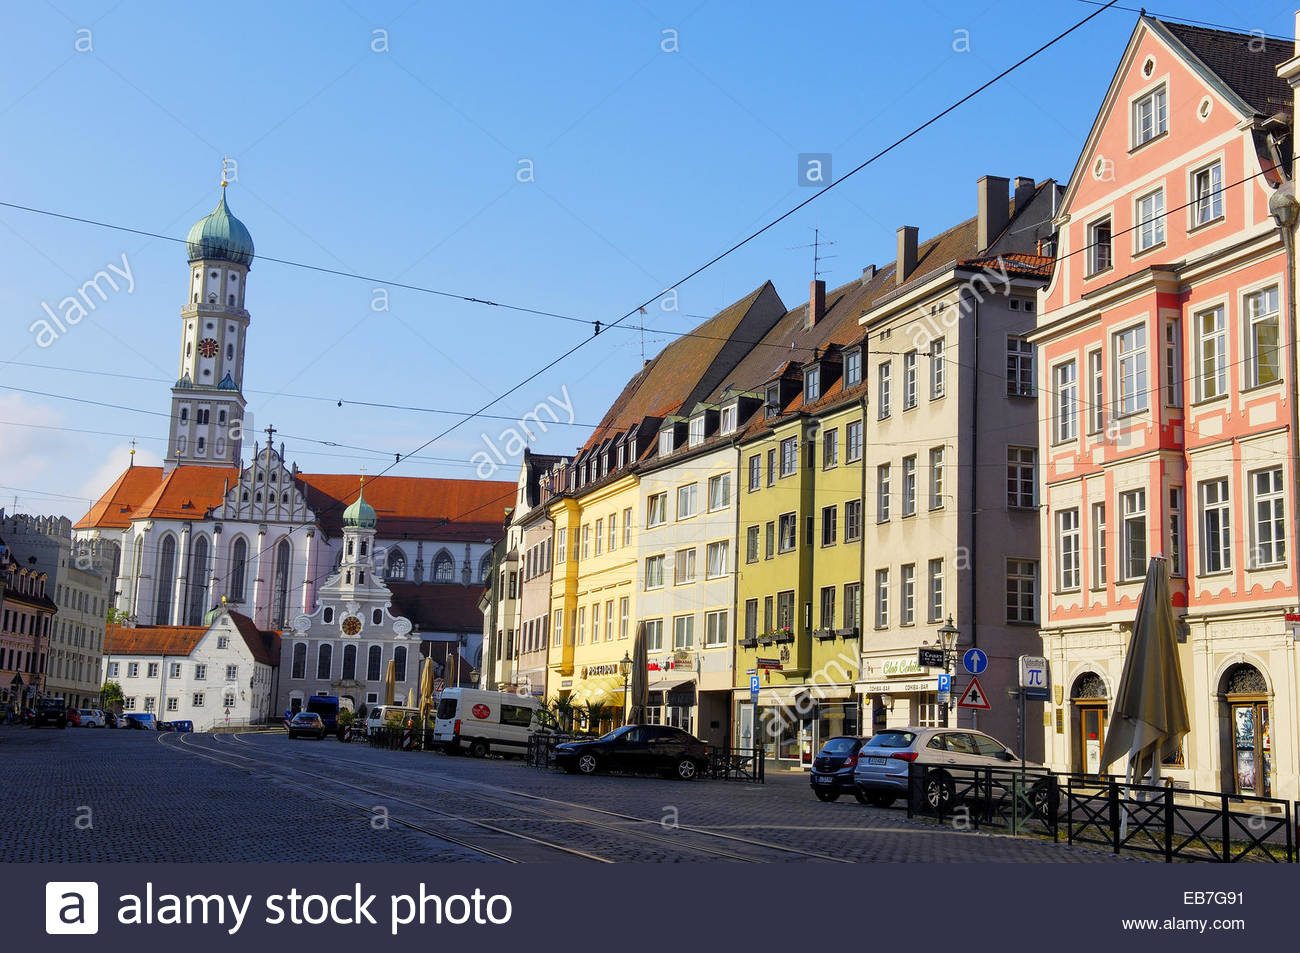 Sts. Ulrich and Afra The Romantic Road, St. Ulrich´s Church, Augsburg, Romantische Strasse (Romantic Road ...